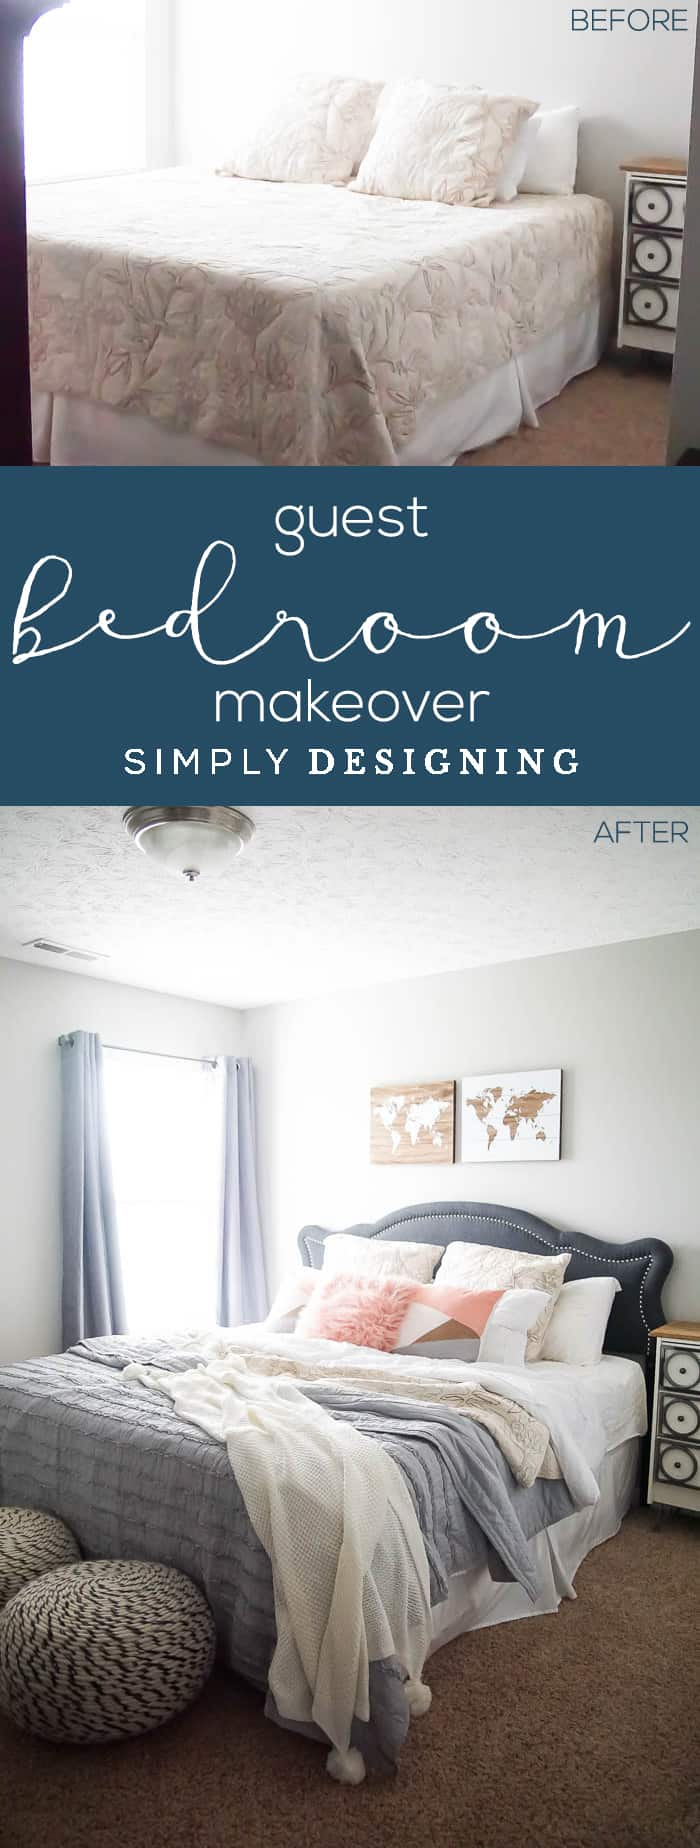 Guest Bedroom Makeover - before and after